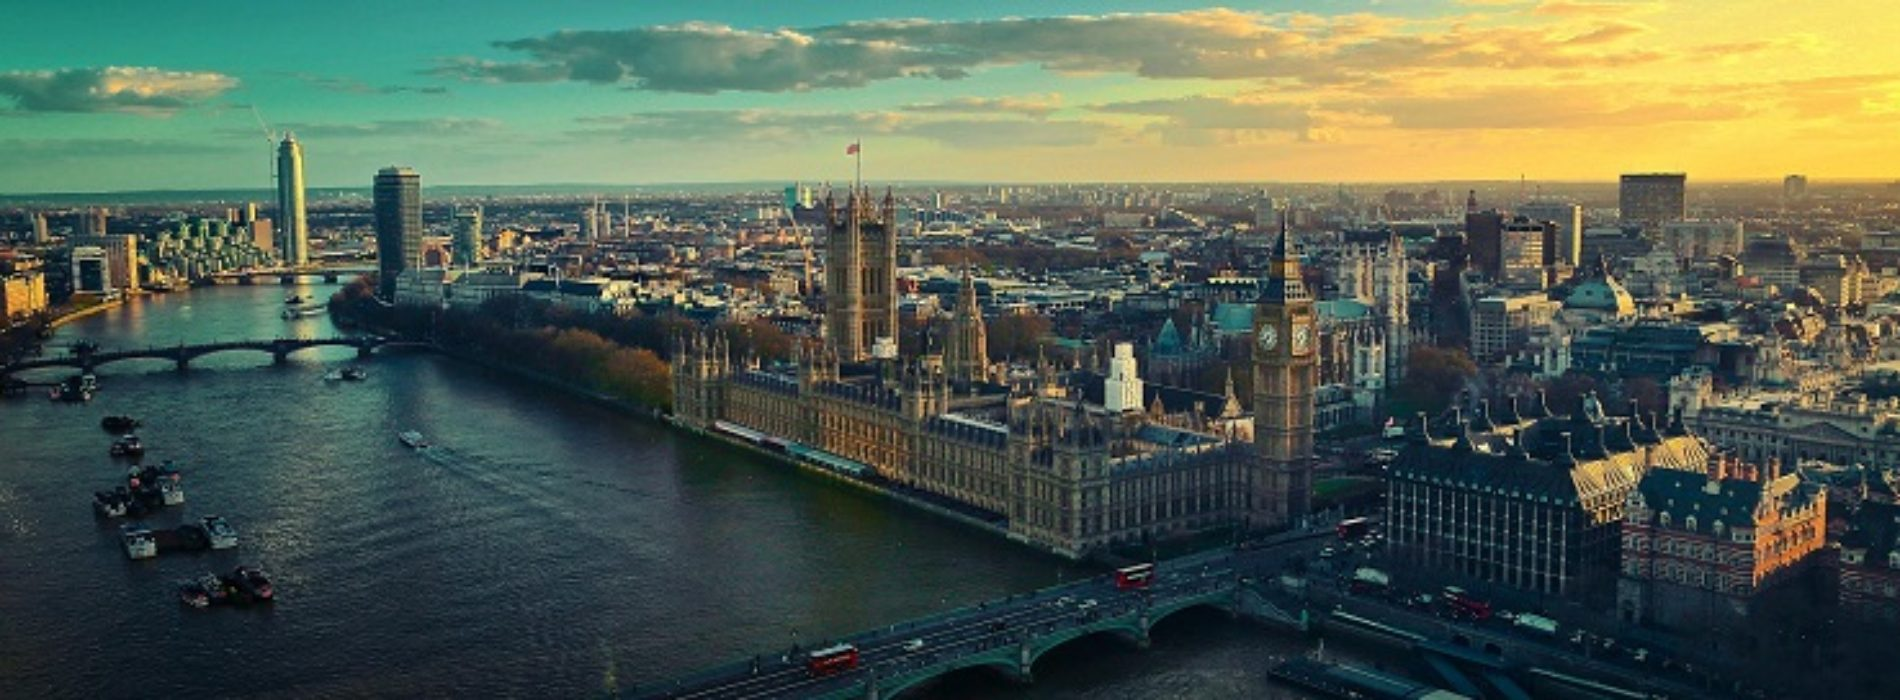 WIN an accessible getaway to London worth £400